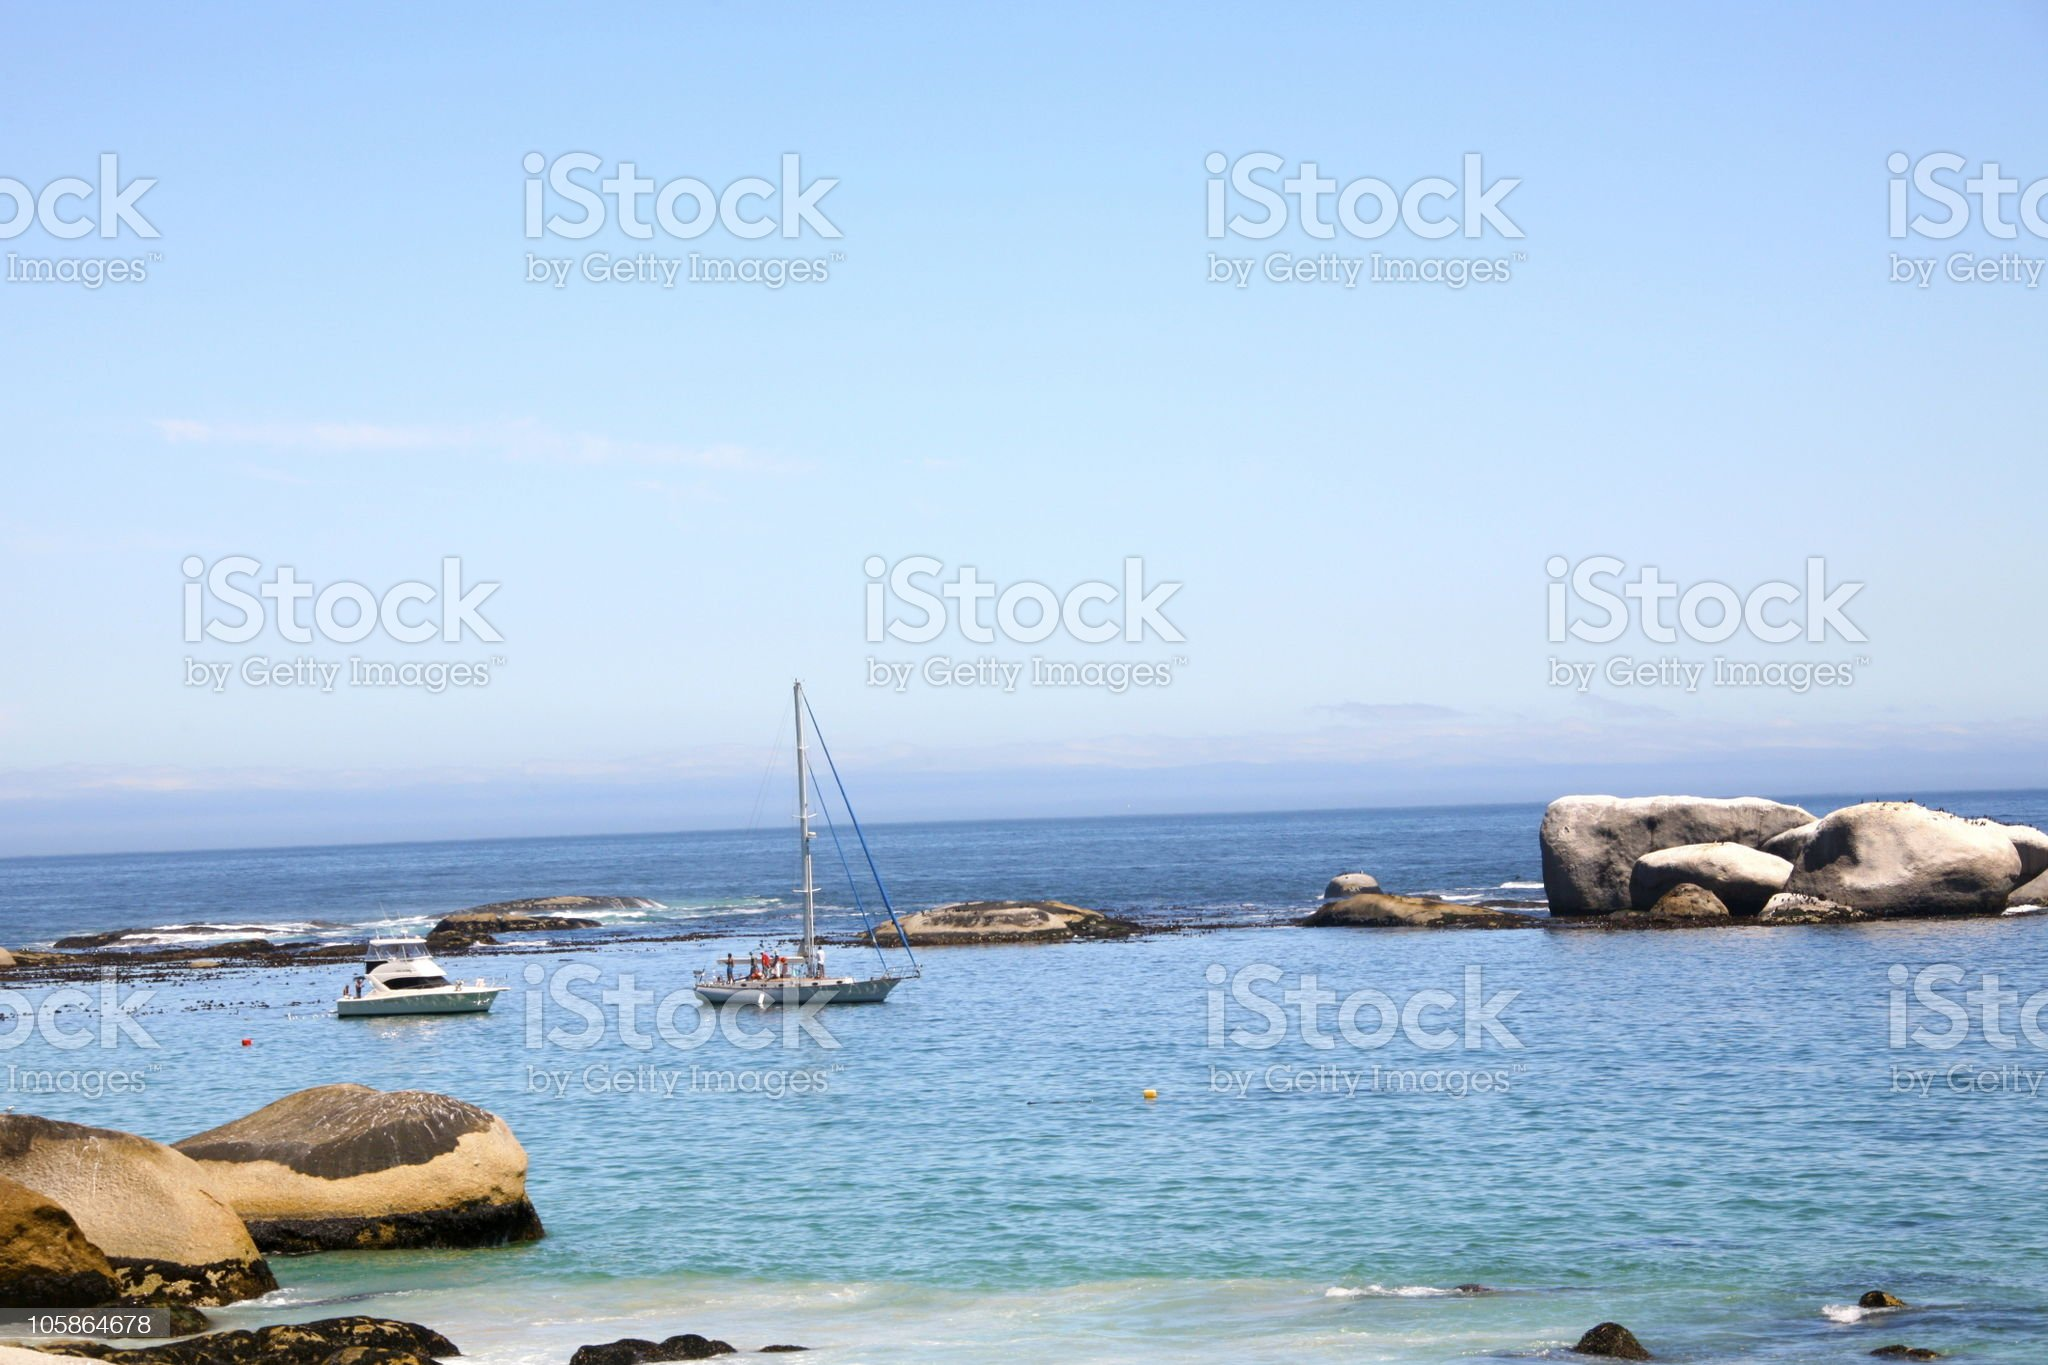 Yacht and Motor Boat Moored in Idyllic Turquoise Sea  royalty-free stock photo